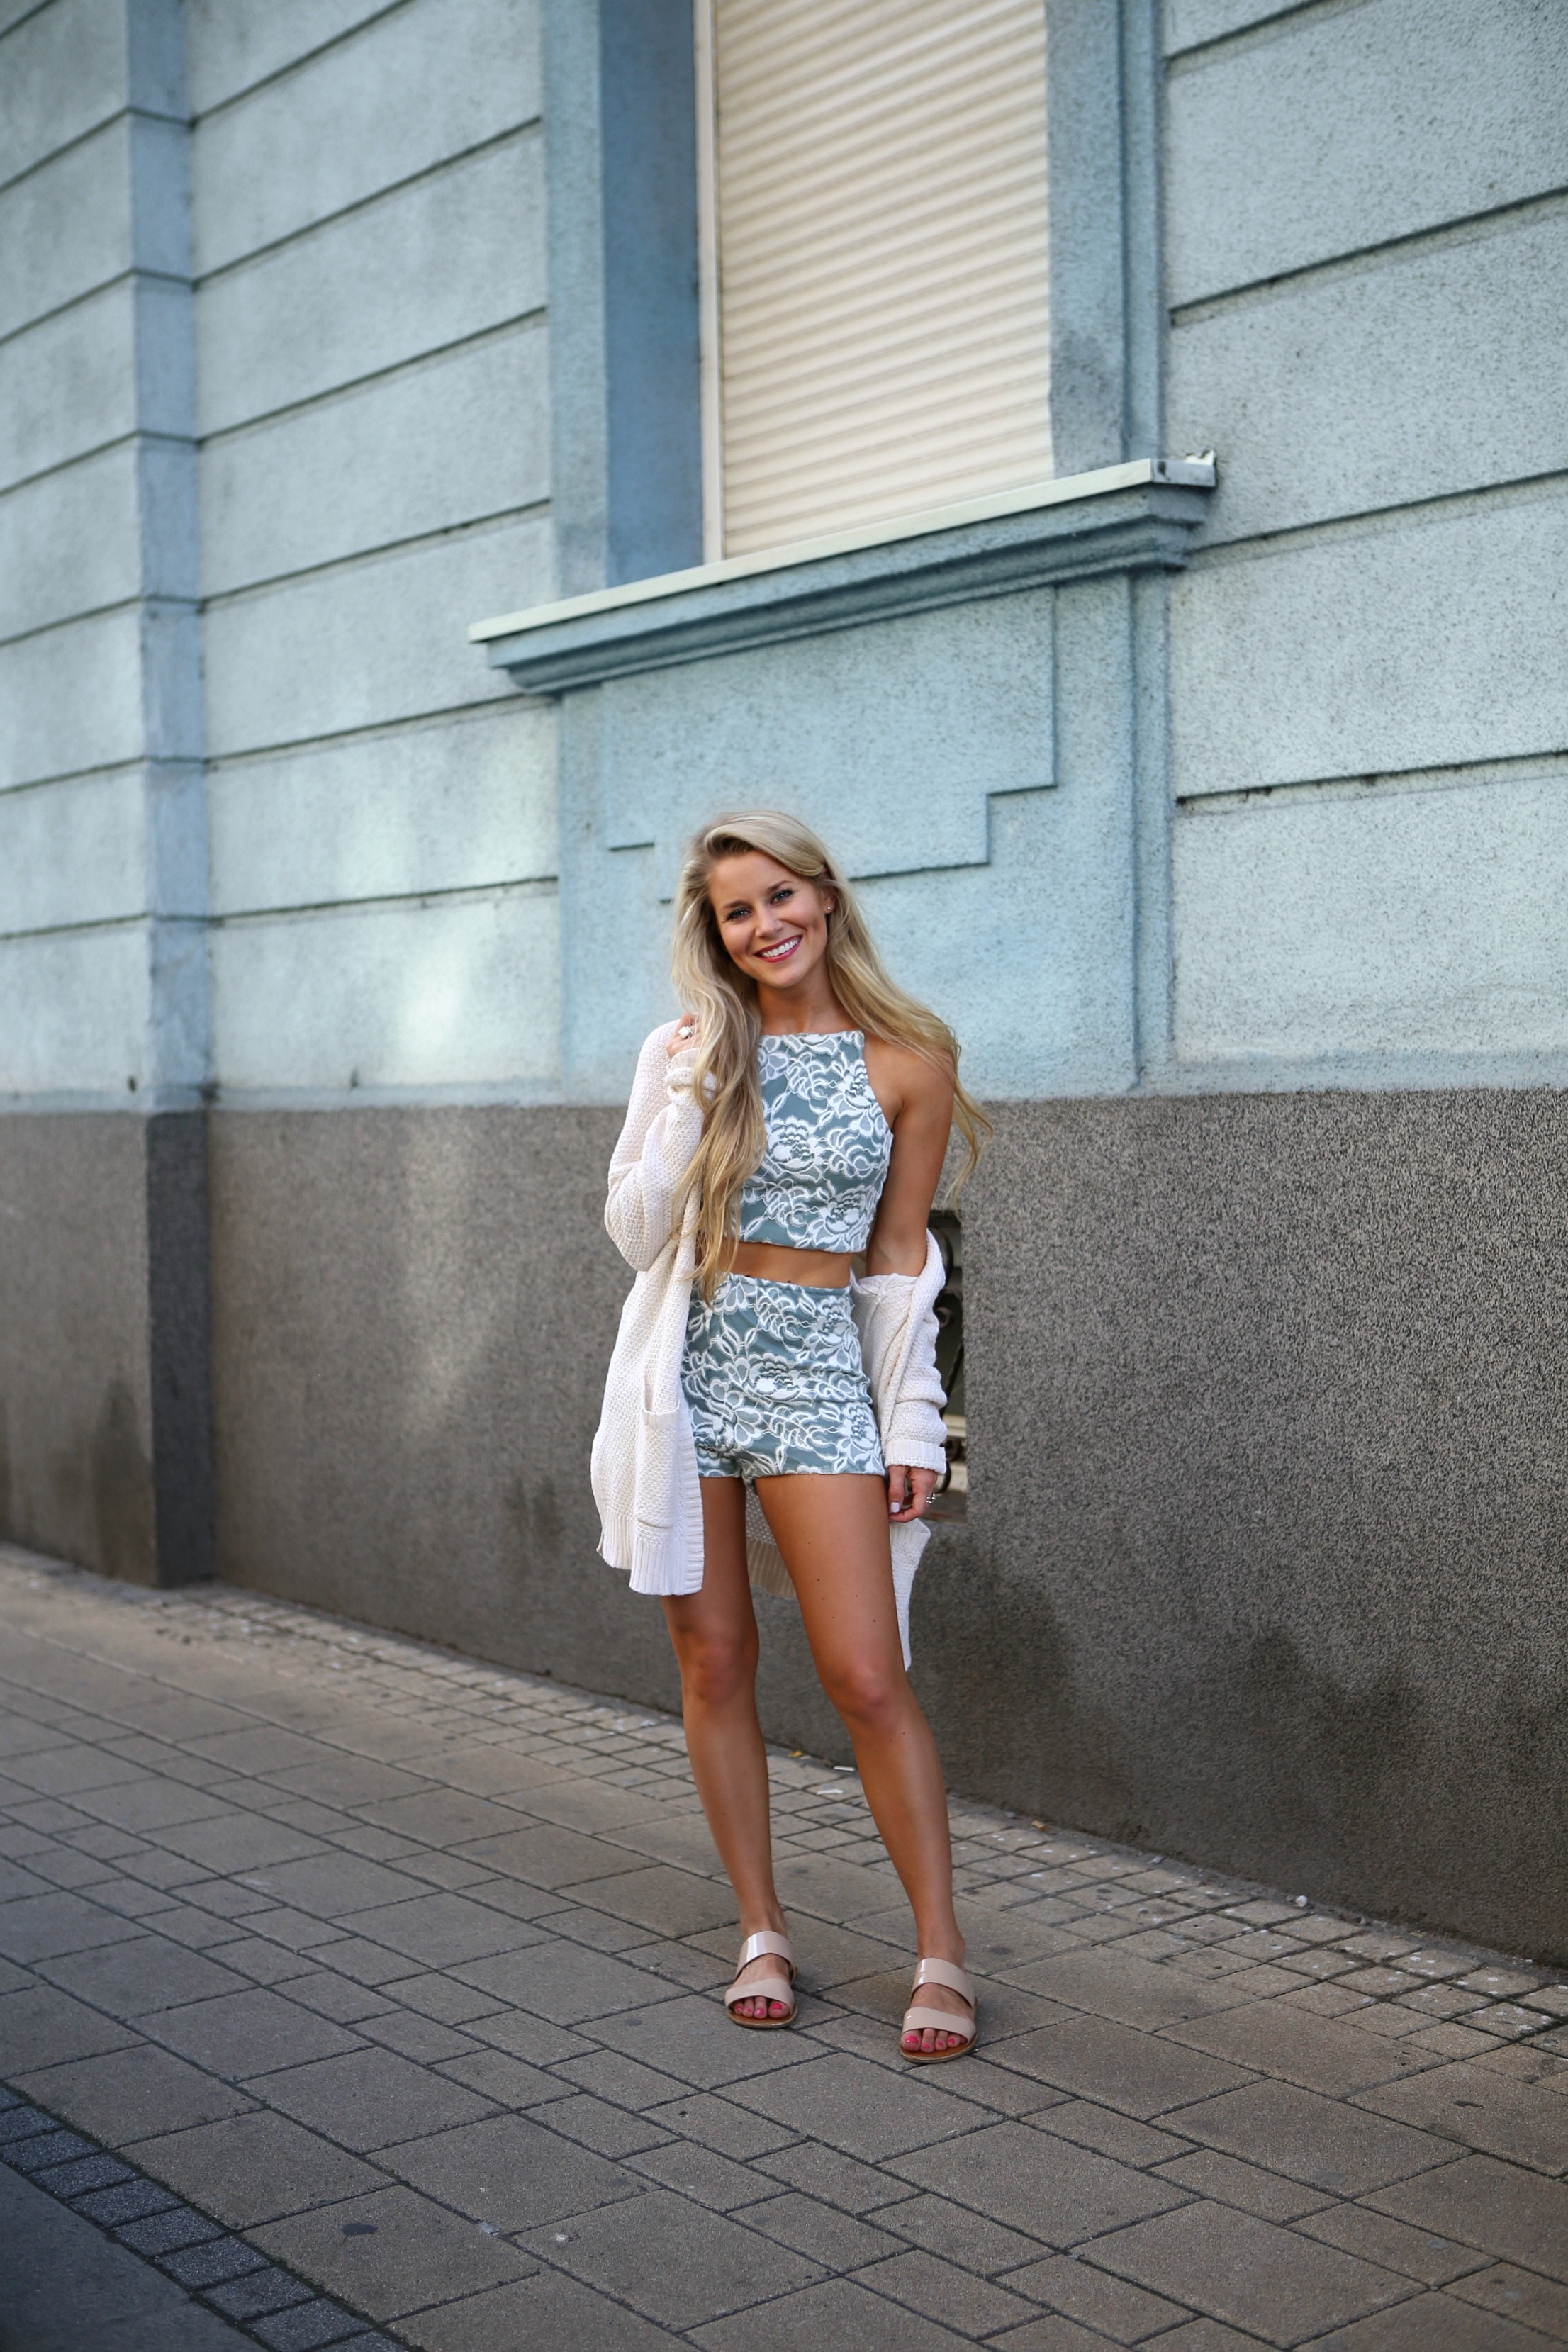 belgrade dating People also use tagged, netlog and also their social dating twoo increases in popularity, and because there are many fb users comparing to the total internet.